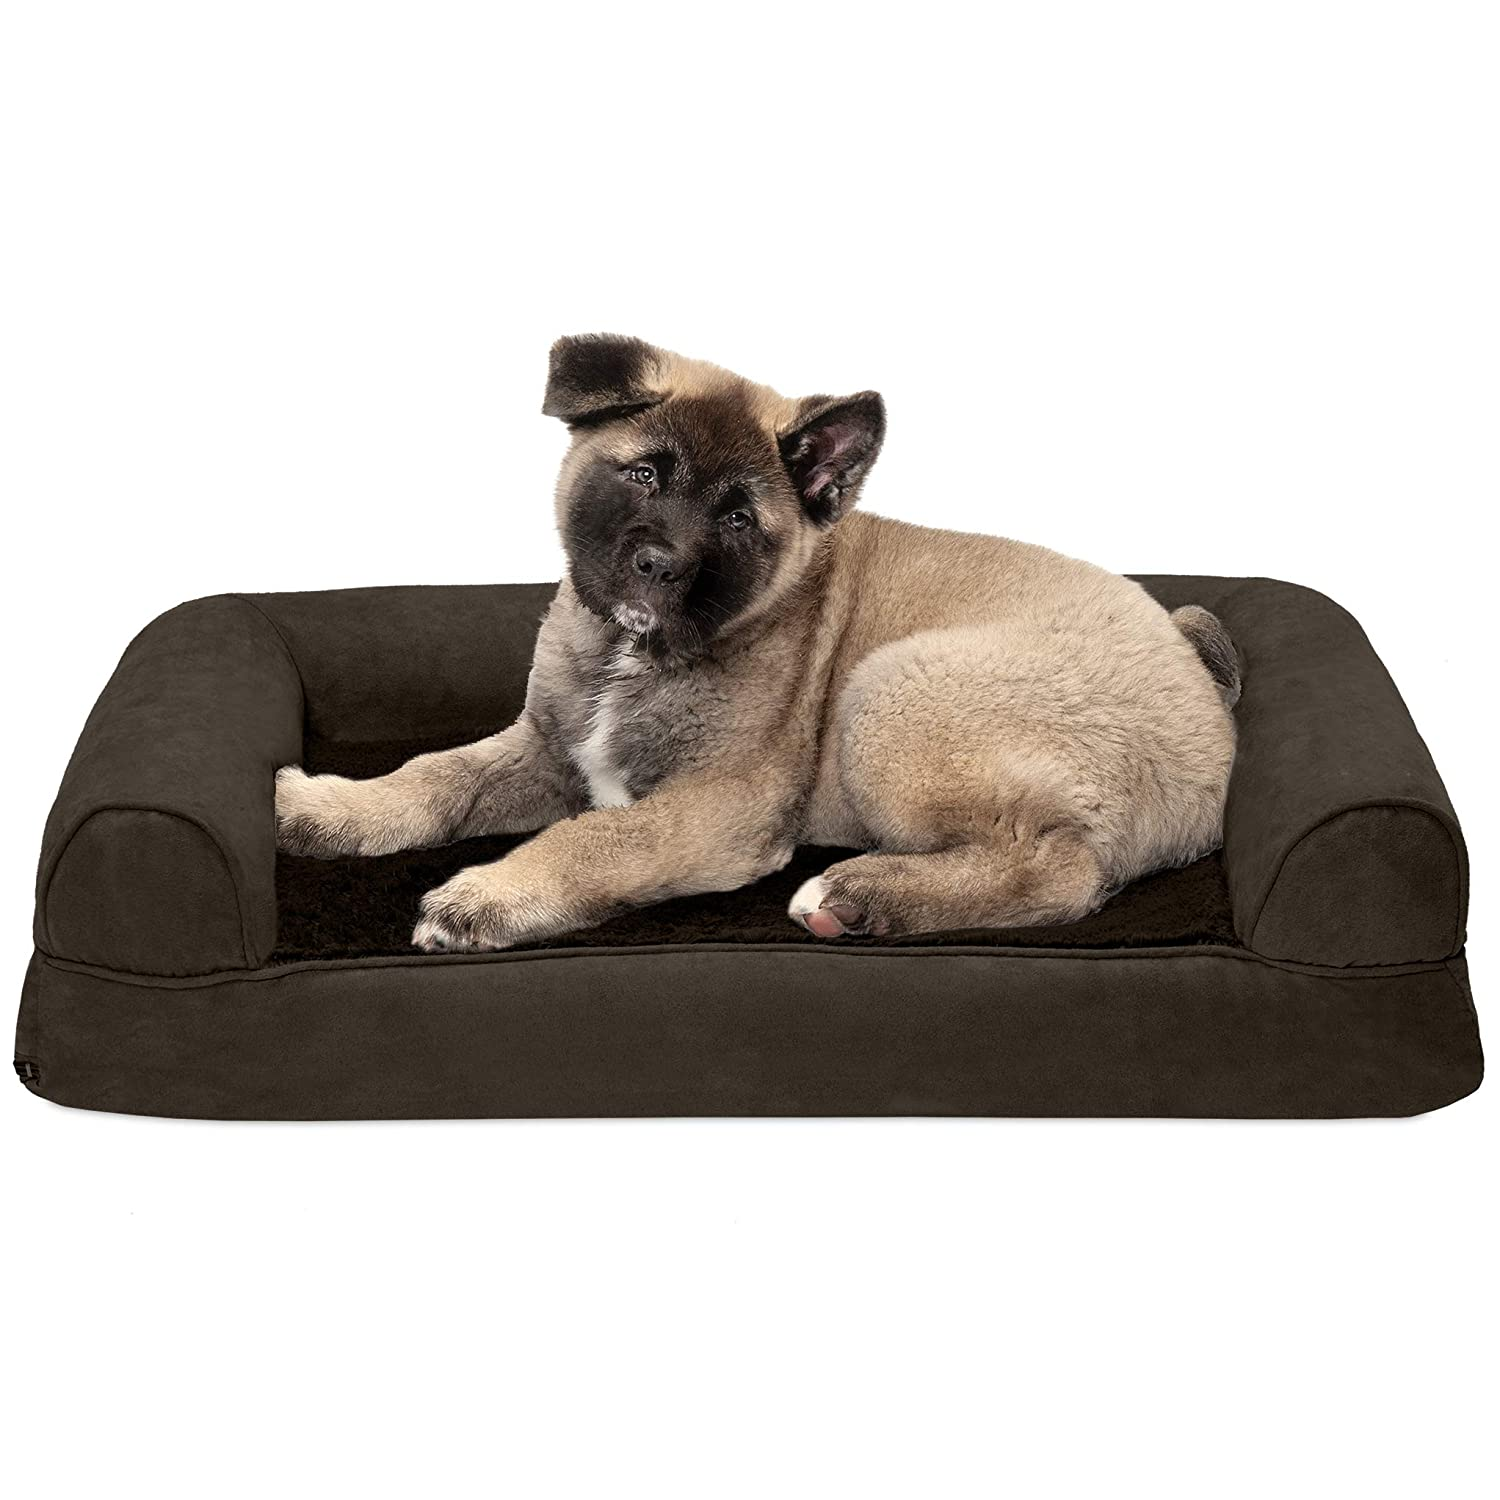 FurHaven Pet Dog Bed   Memory Foam Plush & Suede Couch Sofa-Style Pet Bed for Dogs & Cats, Espresso, Medium